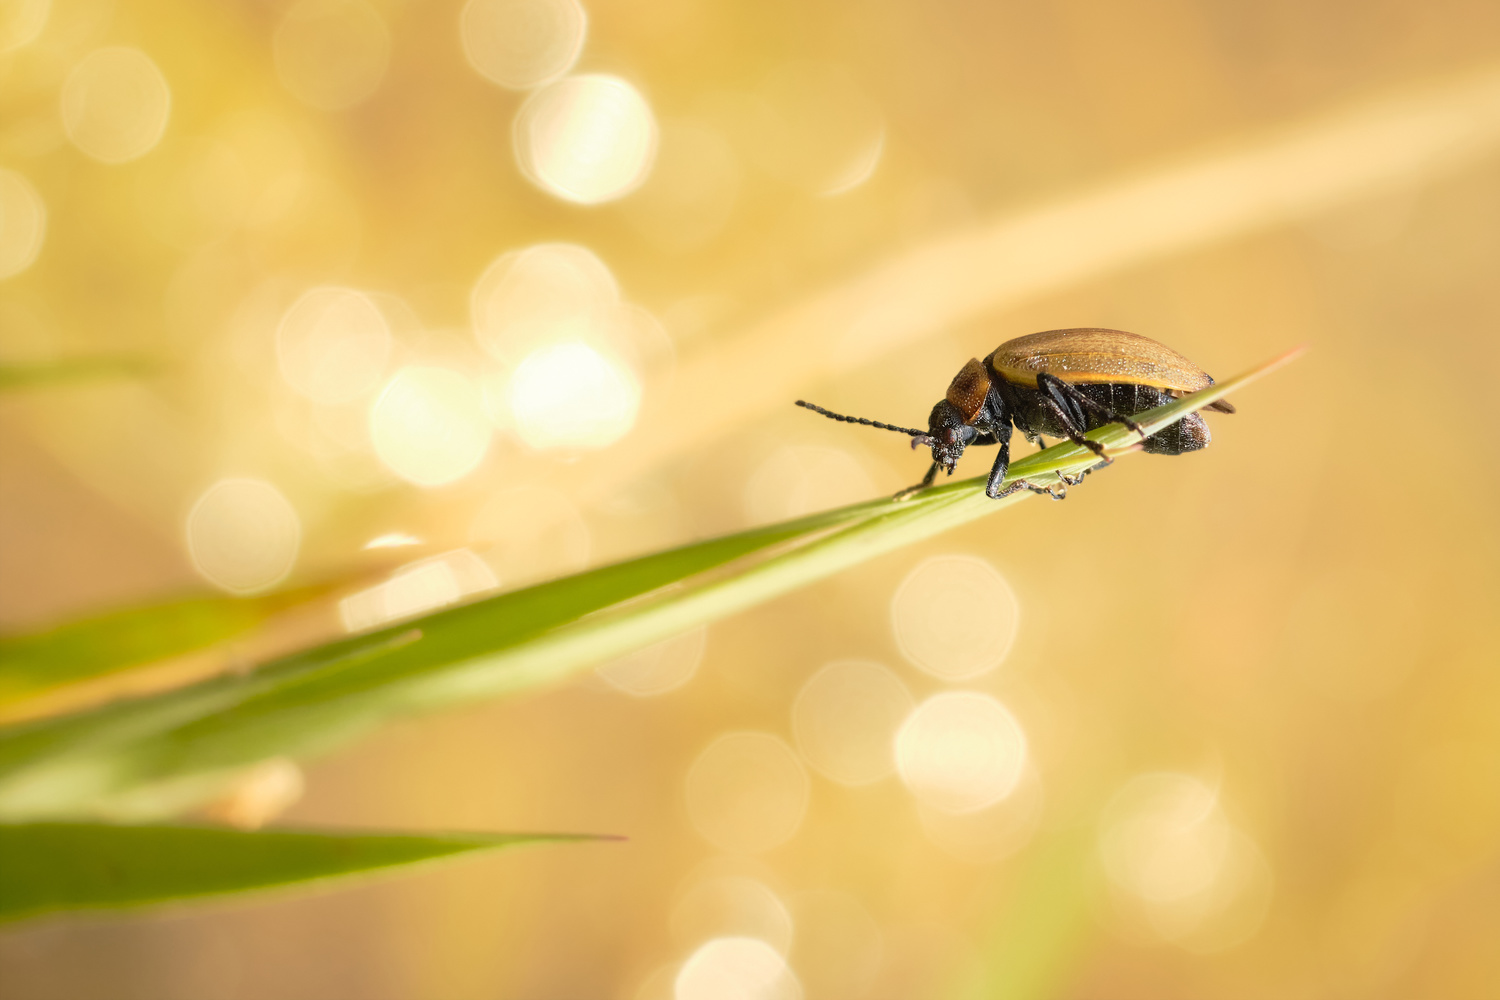 Beetle in the Sun by Deniz O